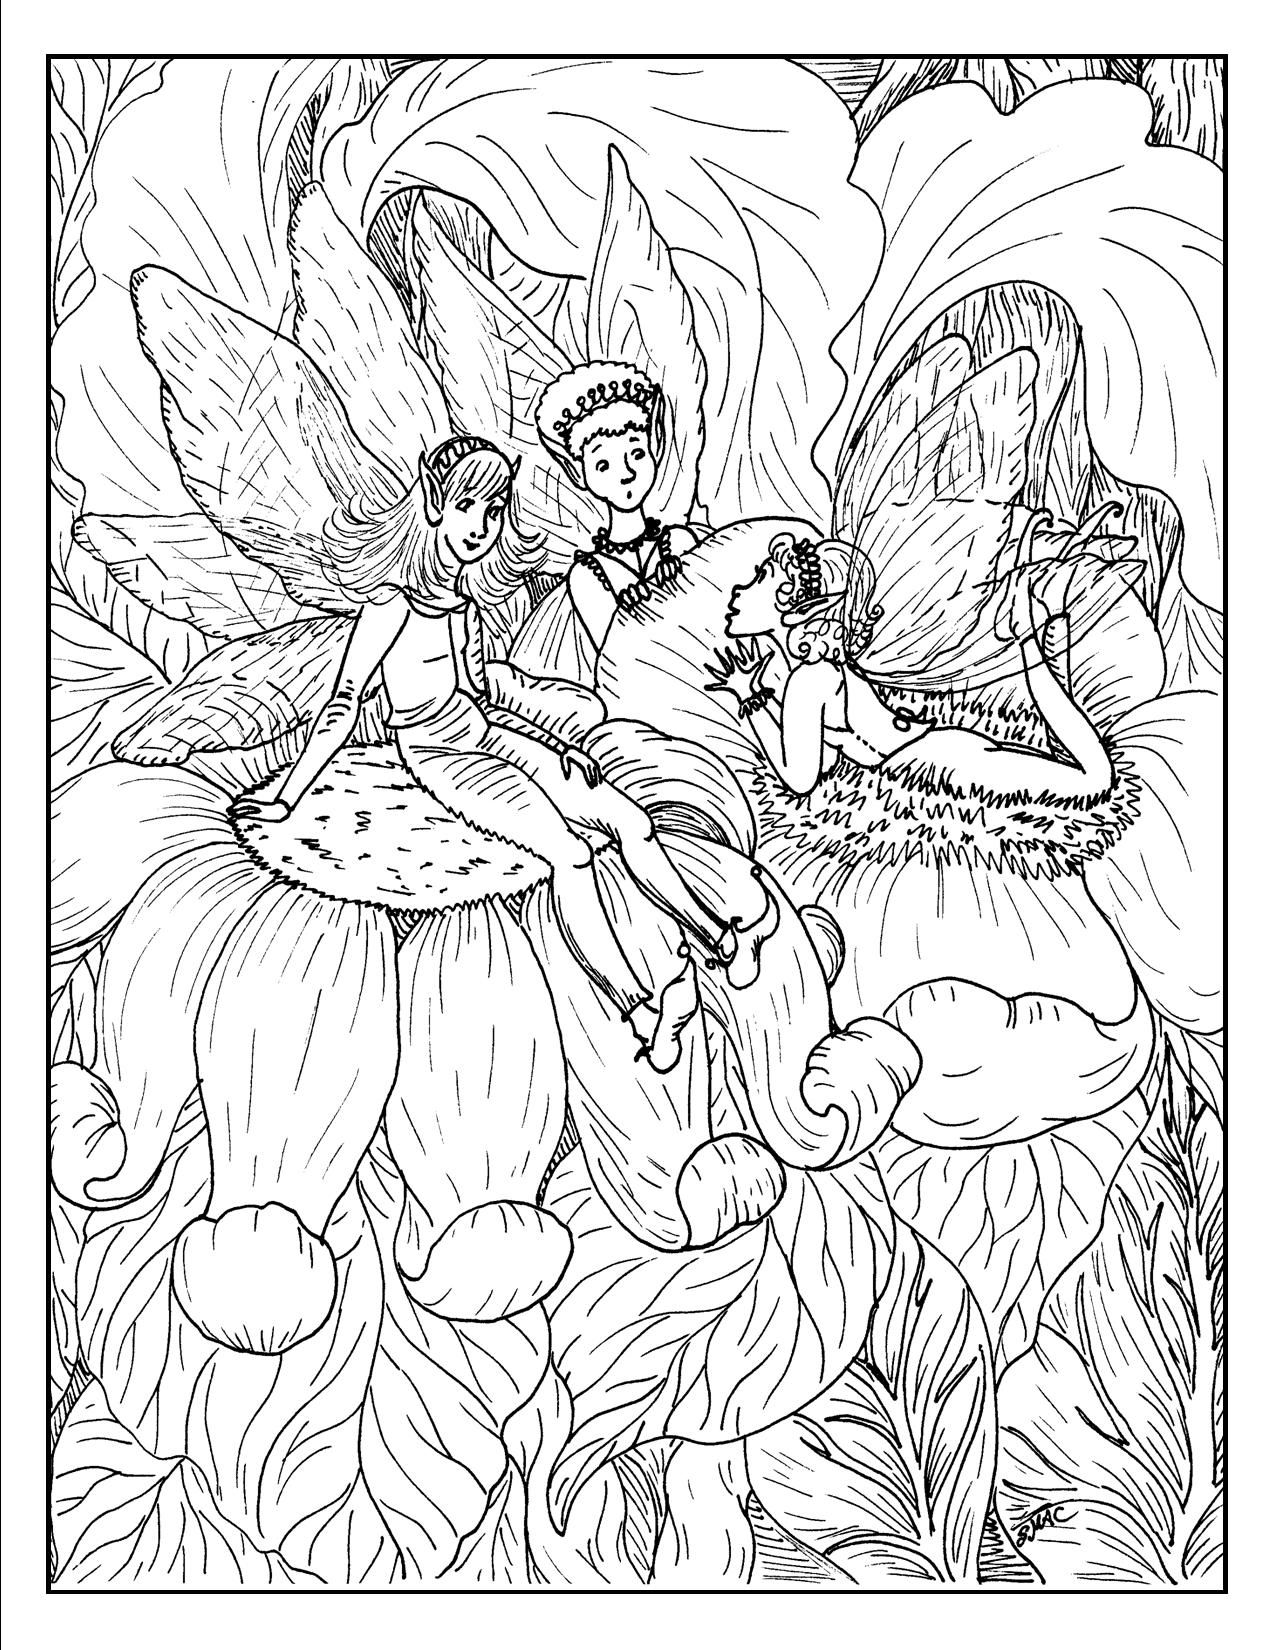 Fantasy Fairy Princess Coloring For Adults Fairy Coloring Princess Coloring Pages Fairy Coloring Pages